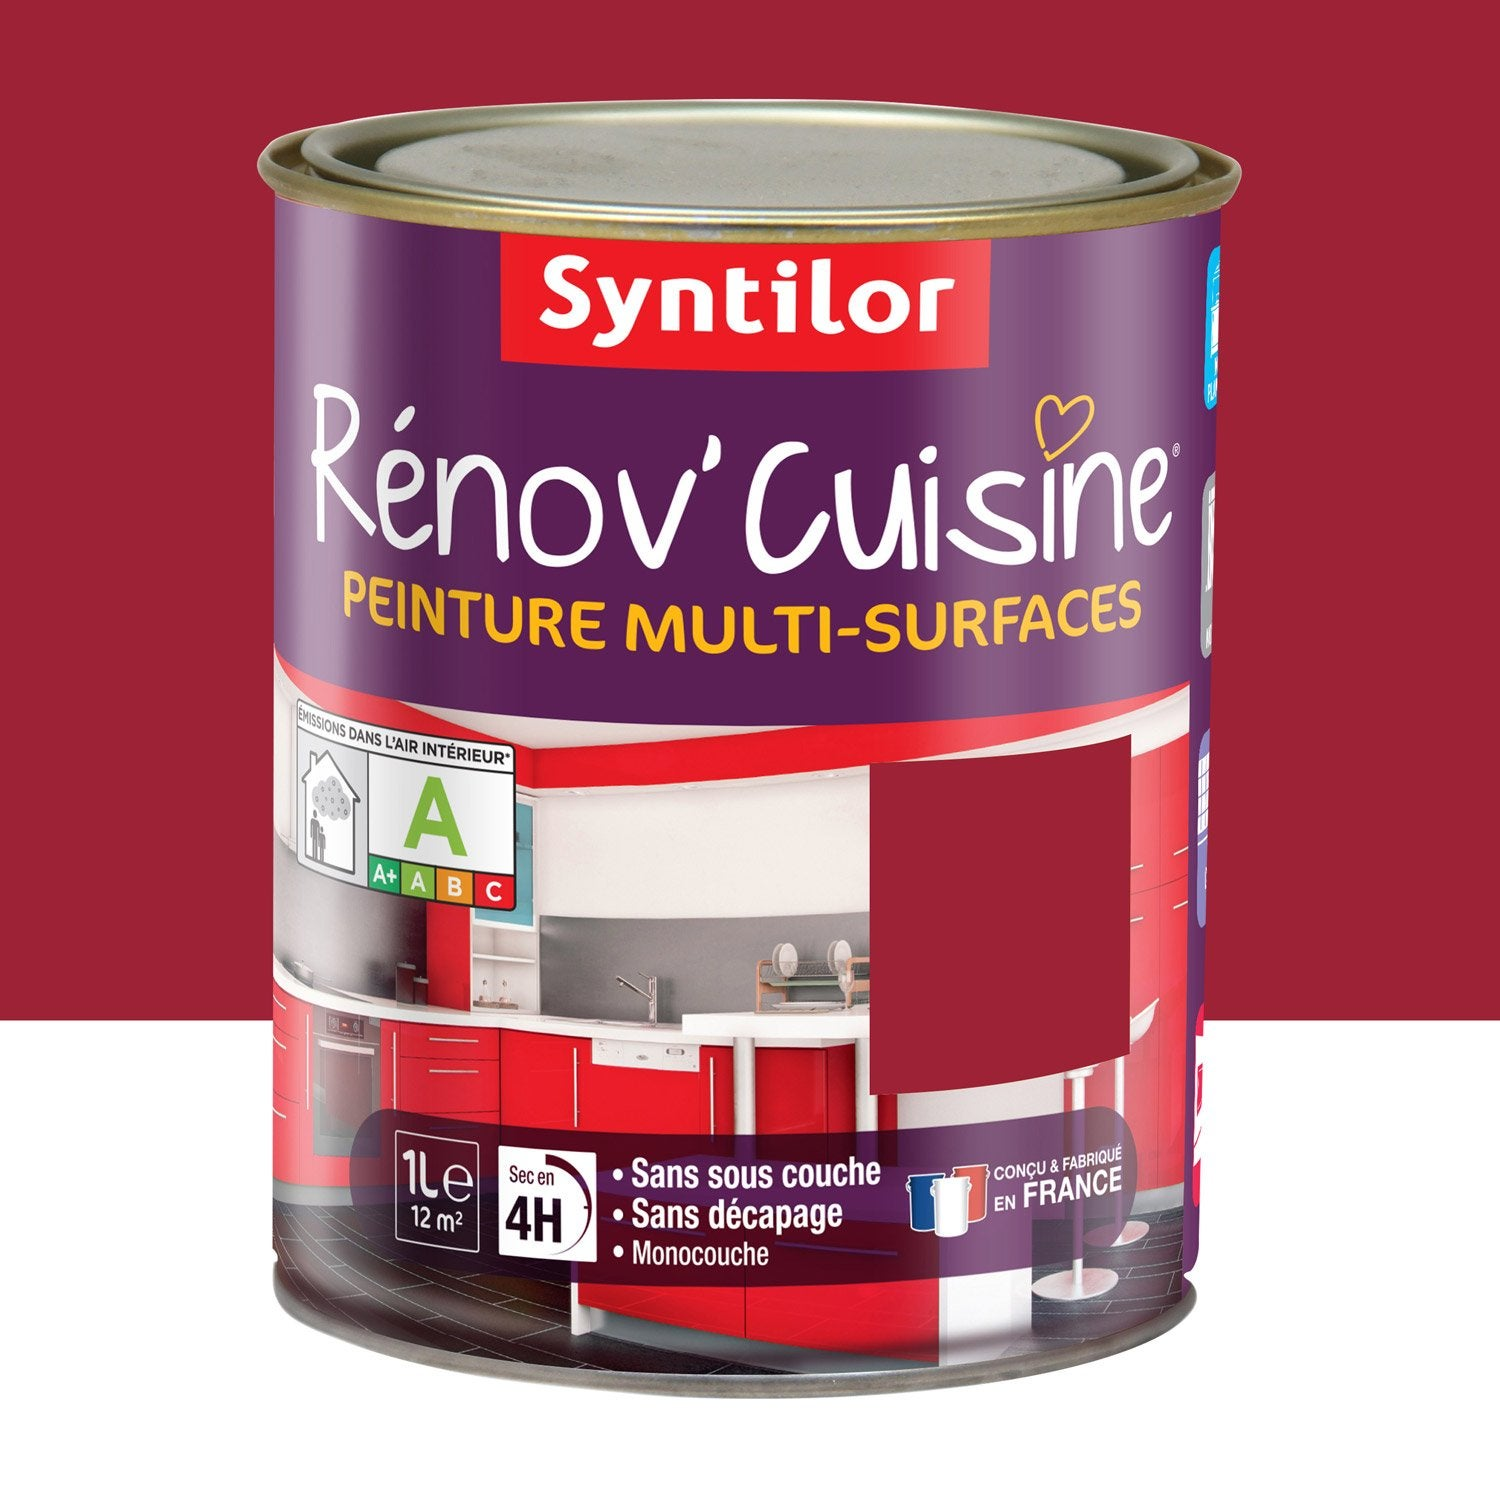 Peinture de r novation r nov 39 cuisine syntilor gaspacho 1 for Peinture de renovation